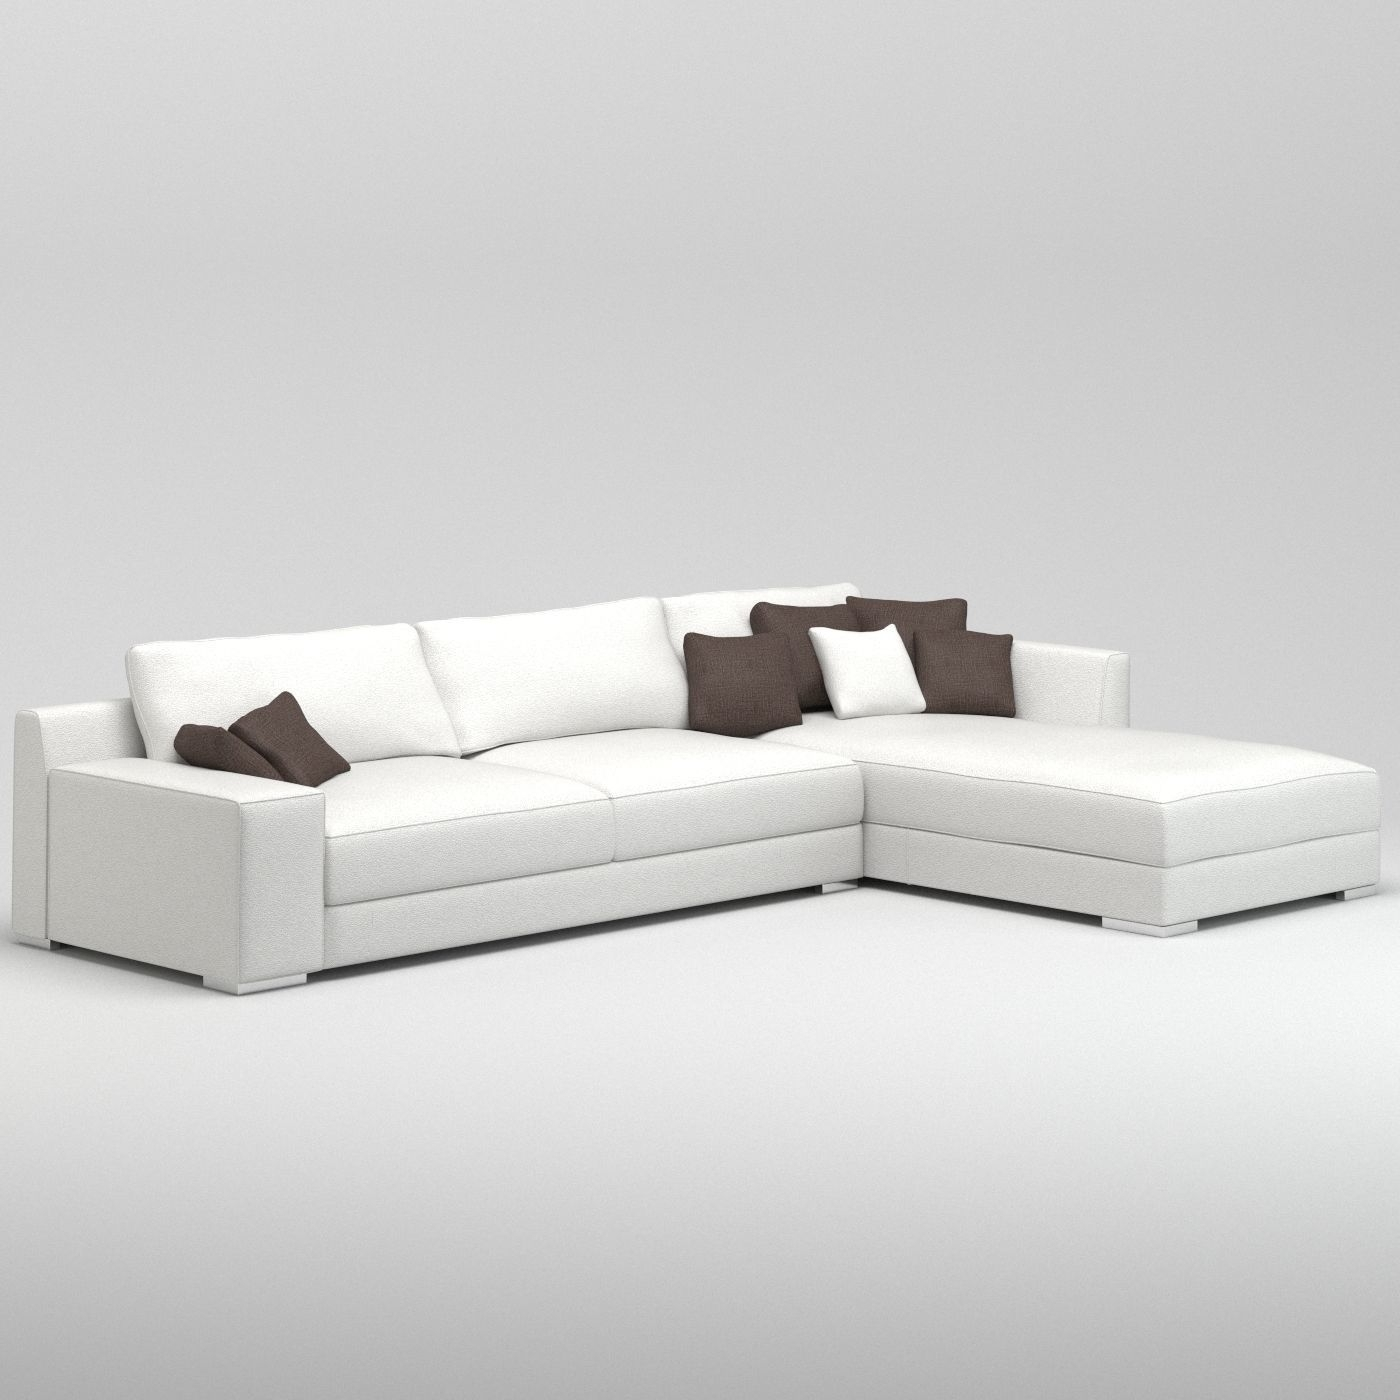 Furniture : Couchtuner Queen Sugar Sectional Sofa Greenville Sc Regarding Sectional Sofas In Greenville Sc (View 8 of 10)